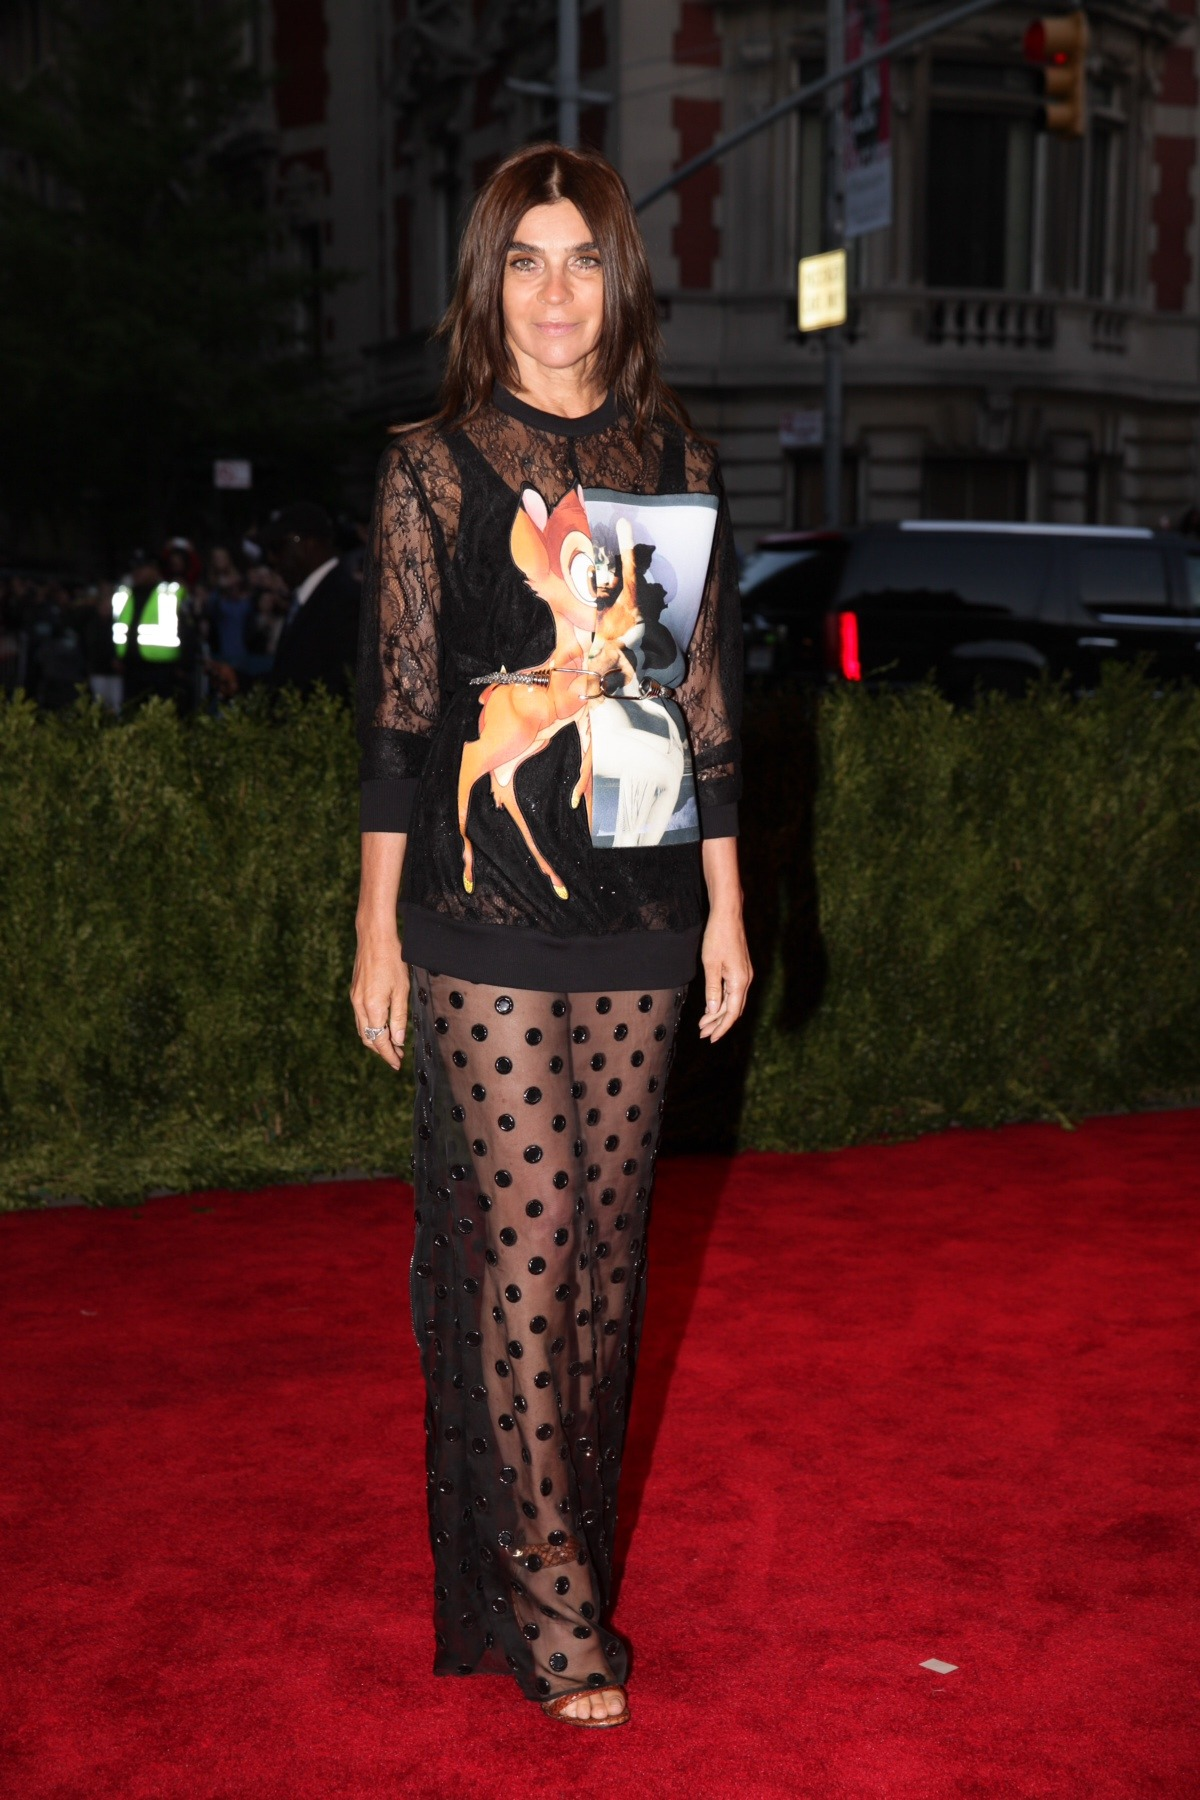 CHAOS TO COUTURE Carine steps out in Givenchy by Riccardo Tisci for last night's punk-themed Met Gala [[MORE]]  Photography Julian Mackler/BFAnyc.com